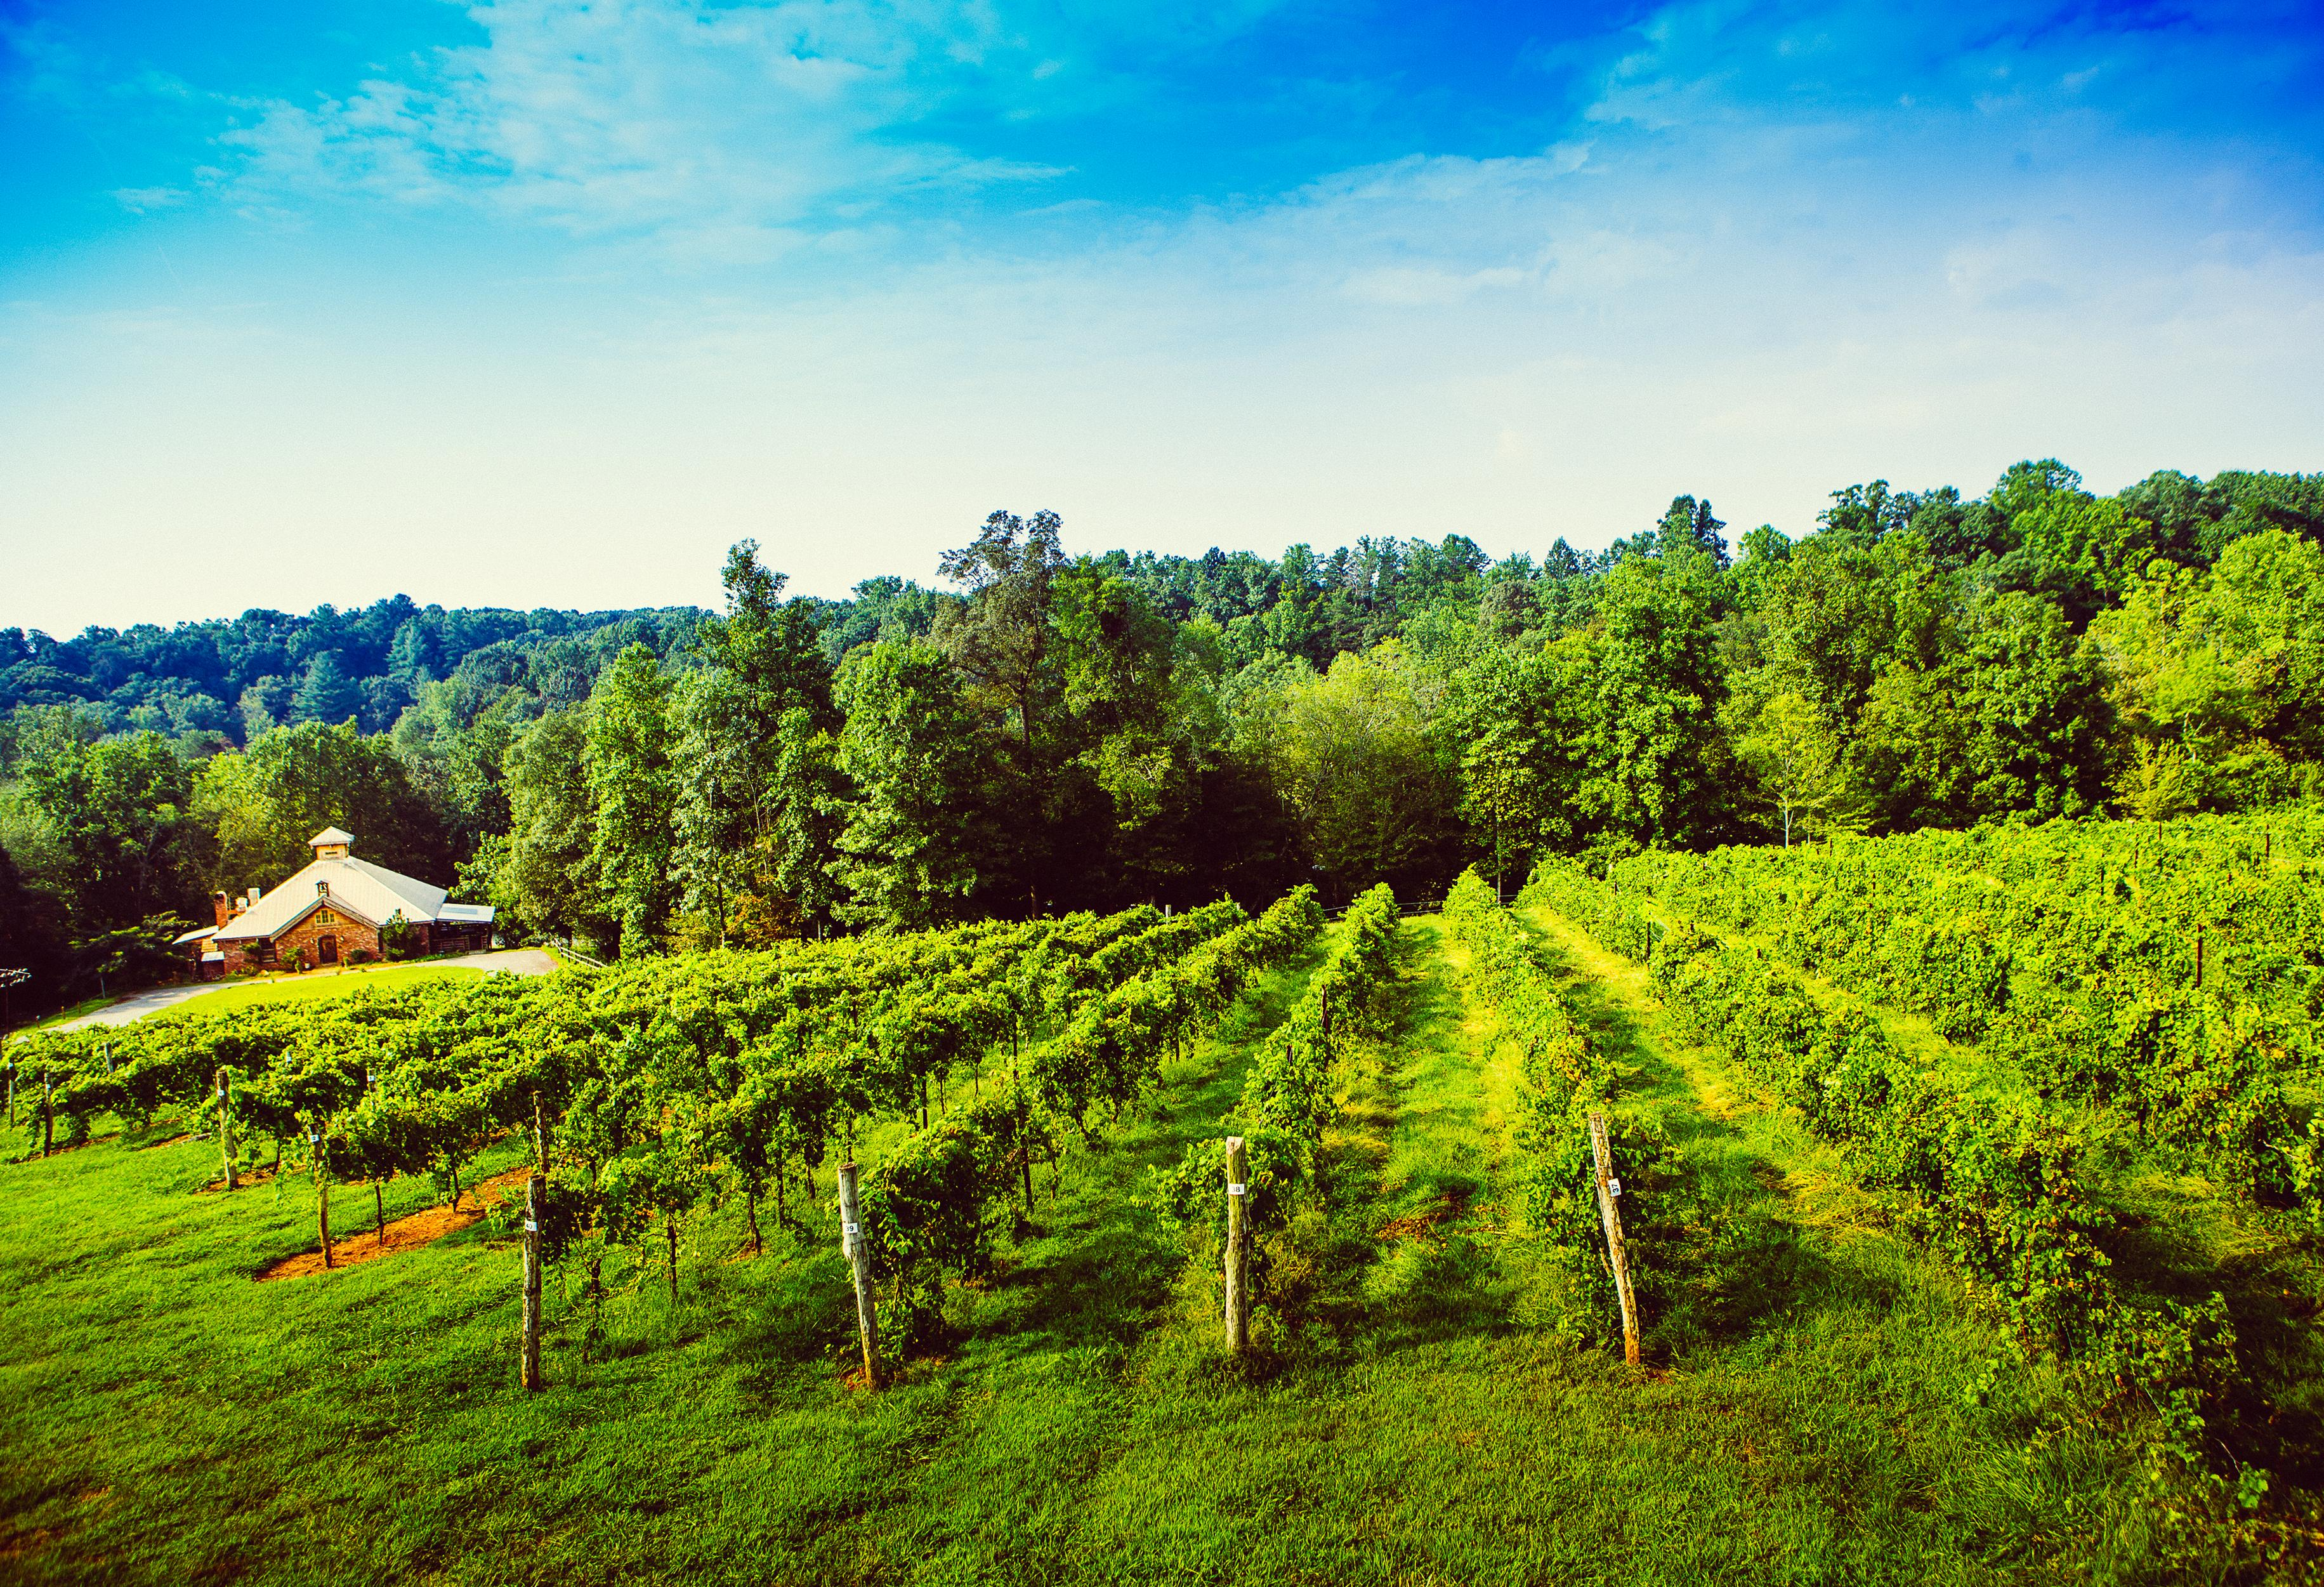 Elkin Creek Vineyard for the Yadkin Valley Winter Wine Passport 2017 - 2018